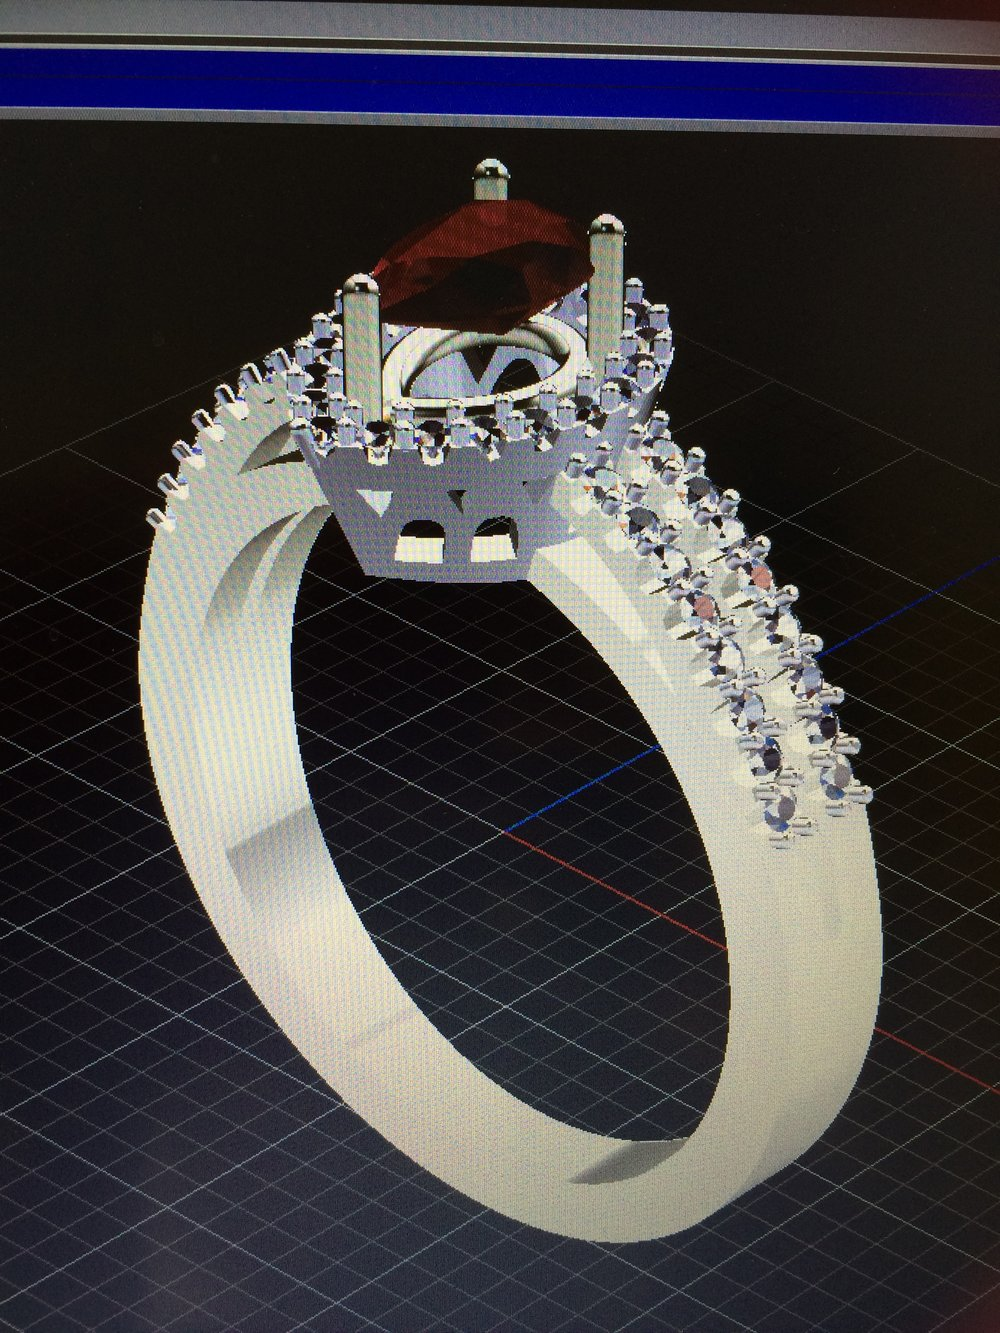 Turn your own personal designs into jewellery you can cherish forever. - C.A.D. Image